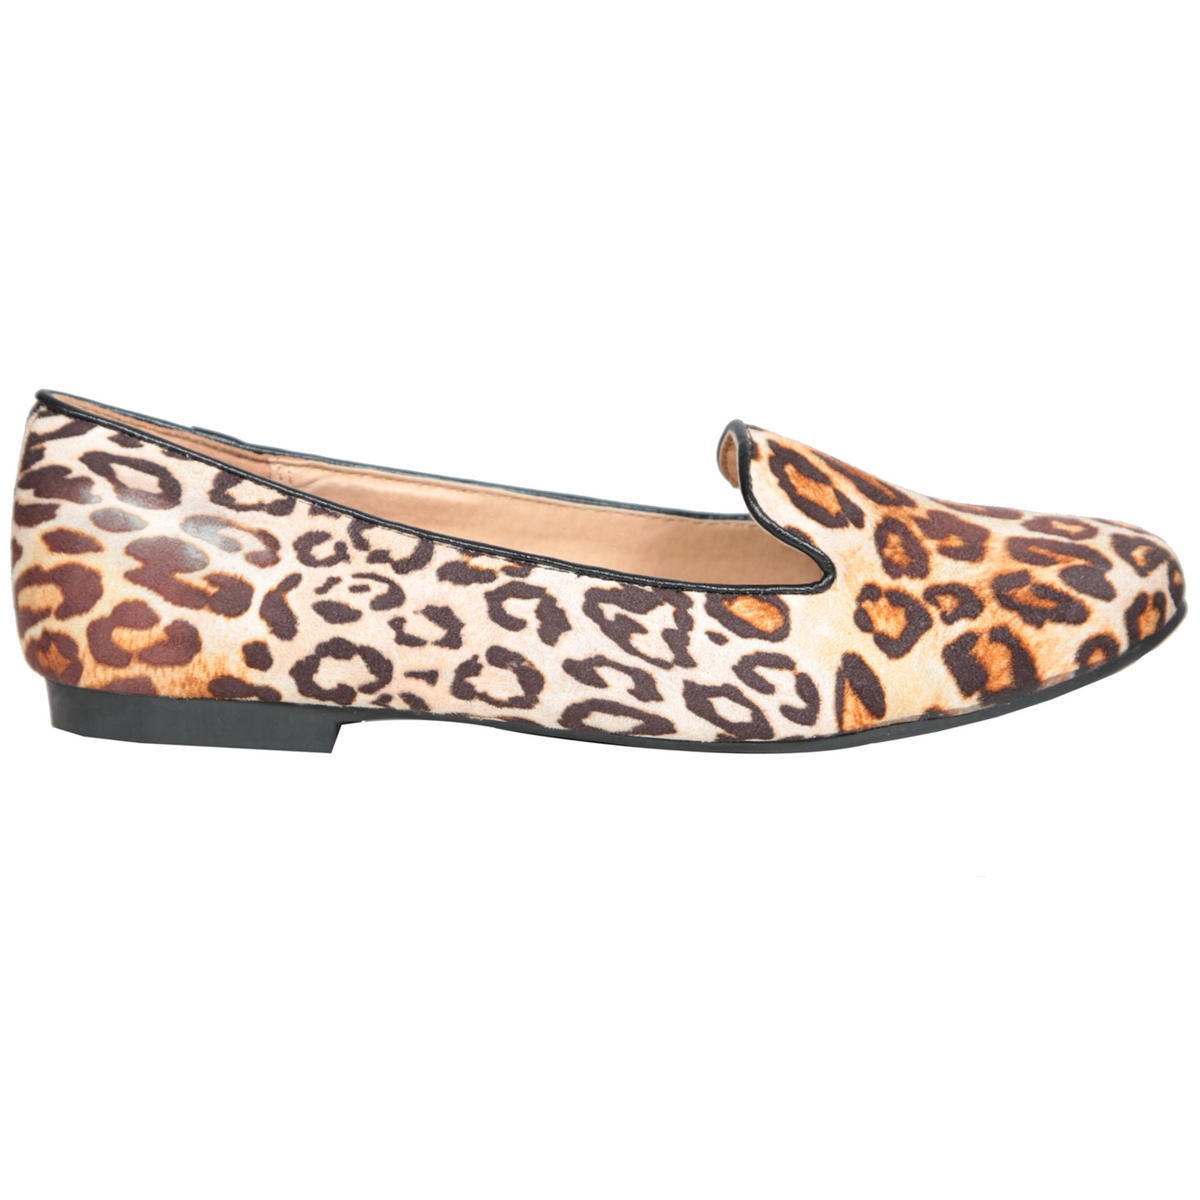 Leopard Print Flat Slipper Shoe Preview